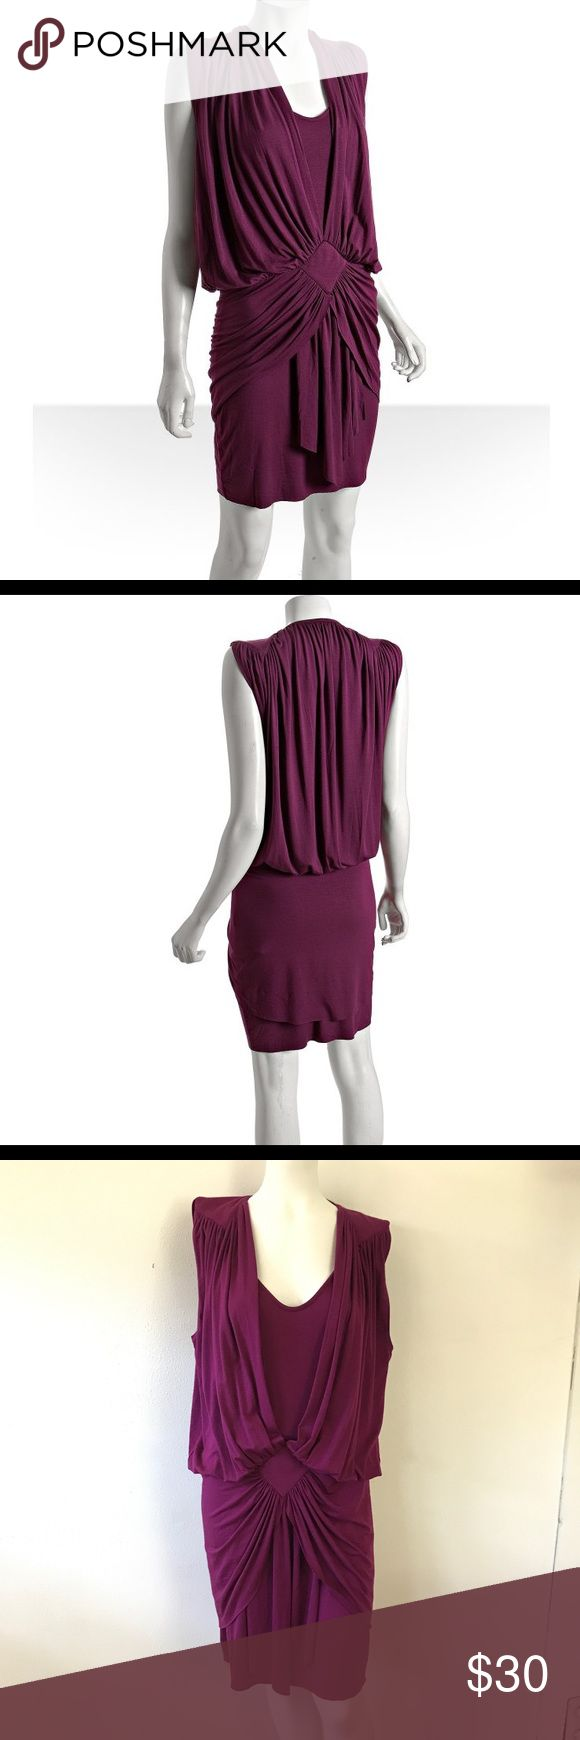 Rachel Pally • Acacia Draped Dress Rachel Pally Sleeveless Draped acacia dress in dragonfly purple. Draped and open in the front with built in lining Gathered In the center Size large  92% modal 8% spandex Rachel Pally Dresses